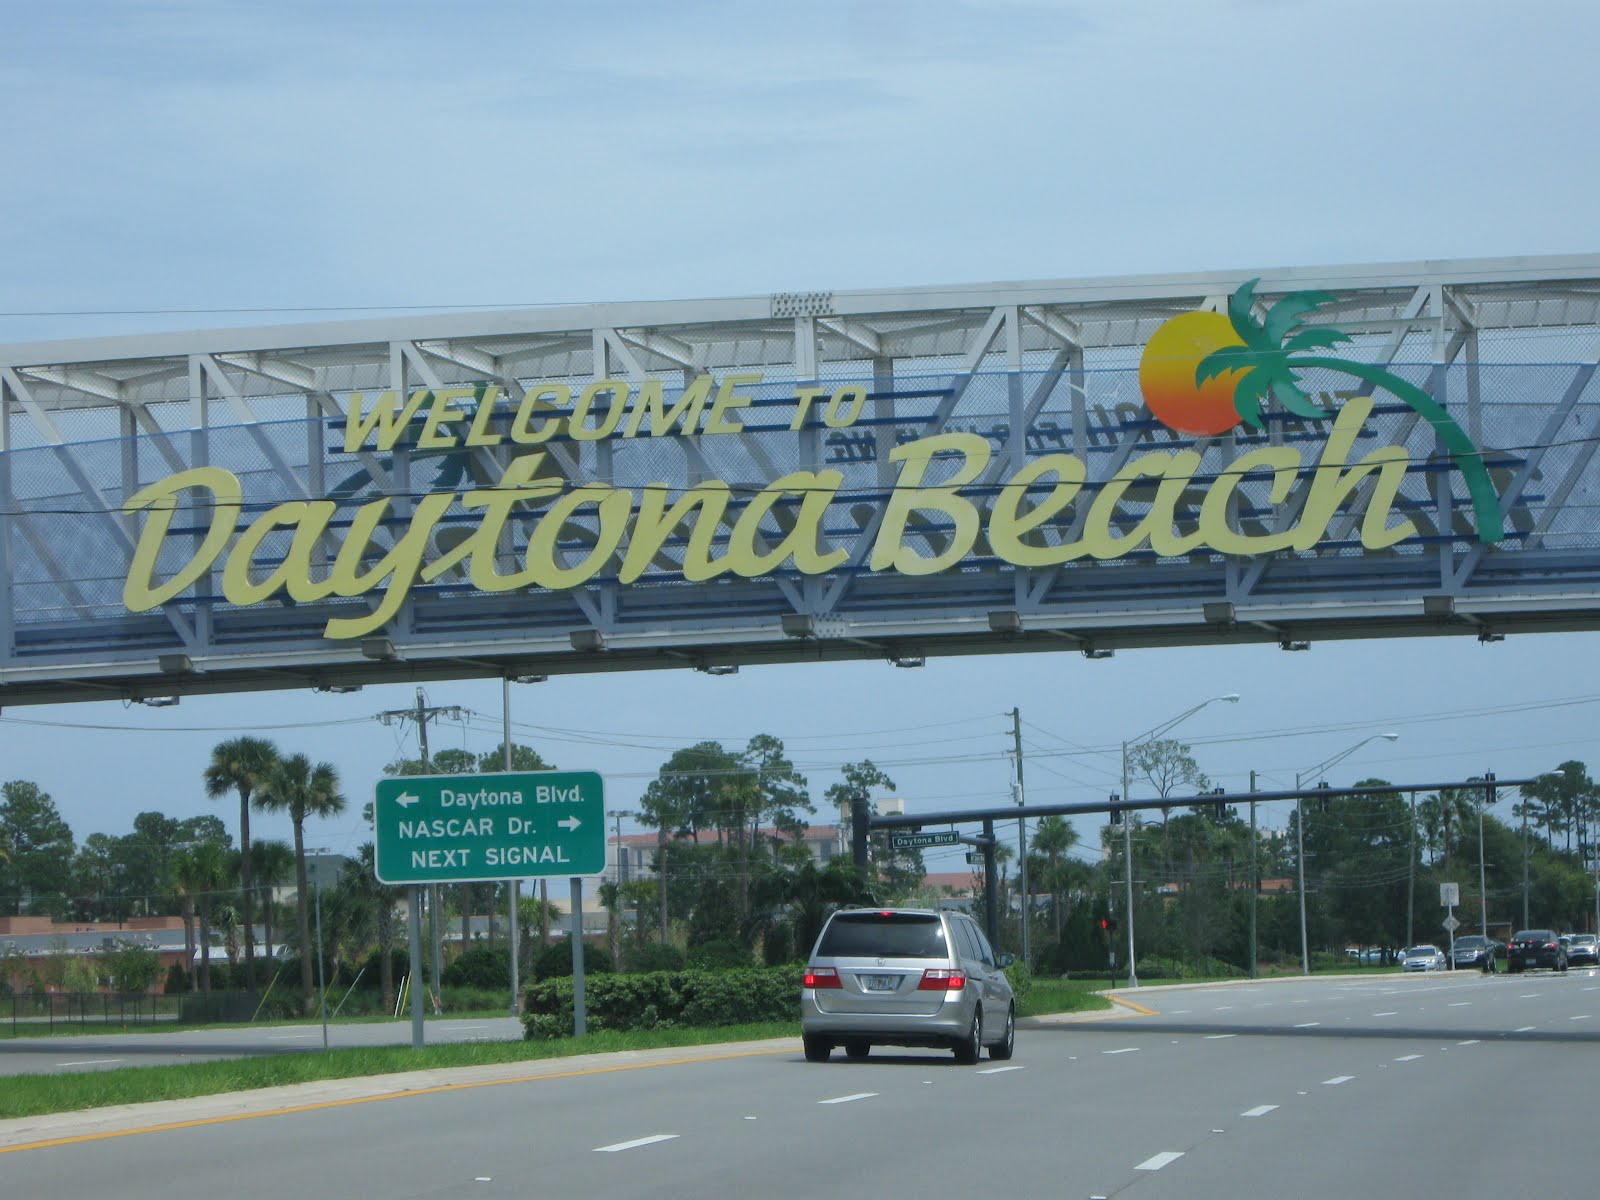 daytona beach guys Things to do near five guys on tripadvisor: see 34,102 reviews and 9,222 candid photos of things to do near five guys in daytona beach, florida.